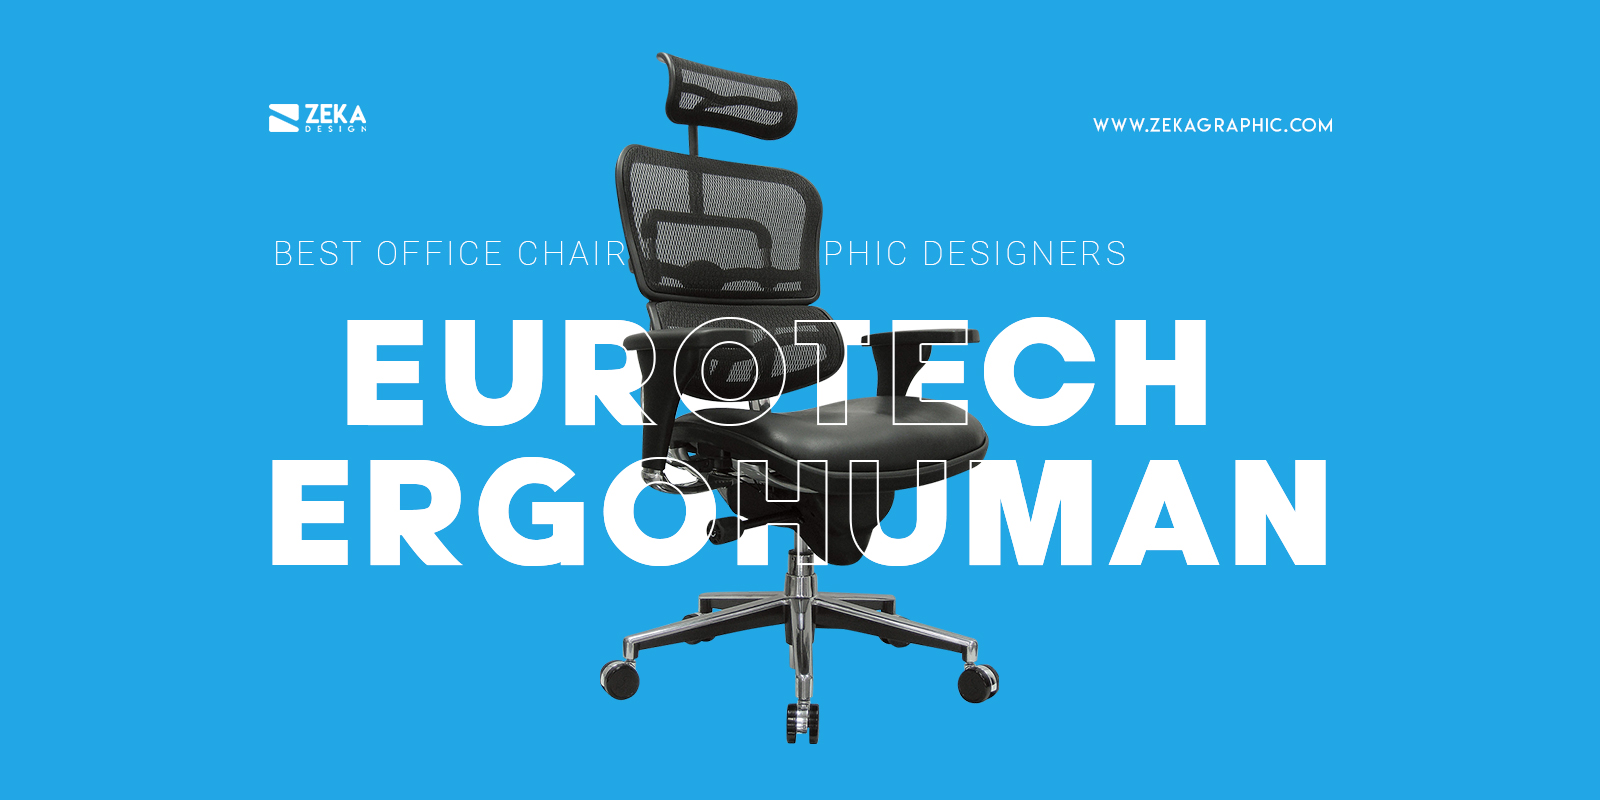 Eurotech Ergohuman Best Office Chair With Headrest For Graphic Designers